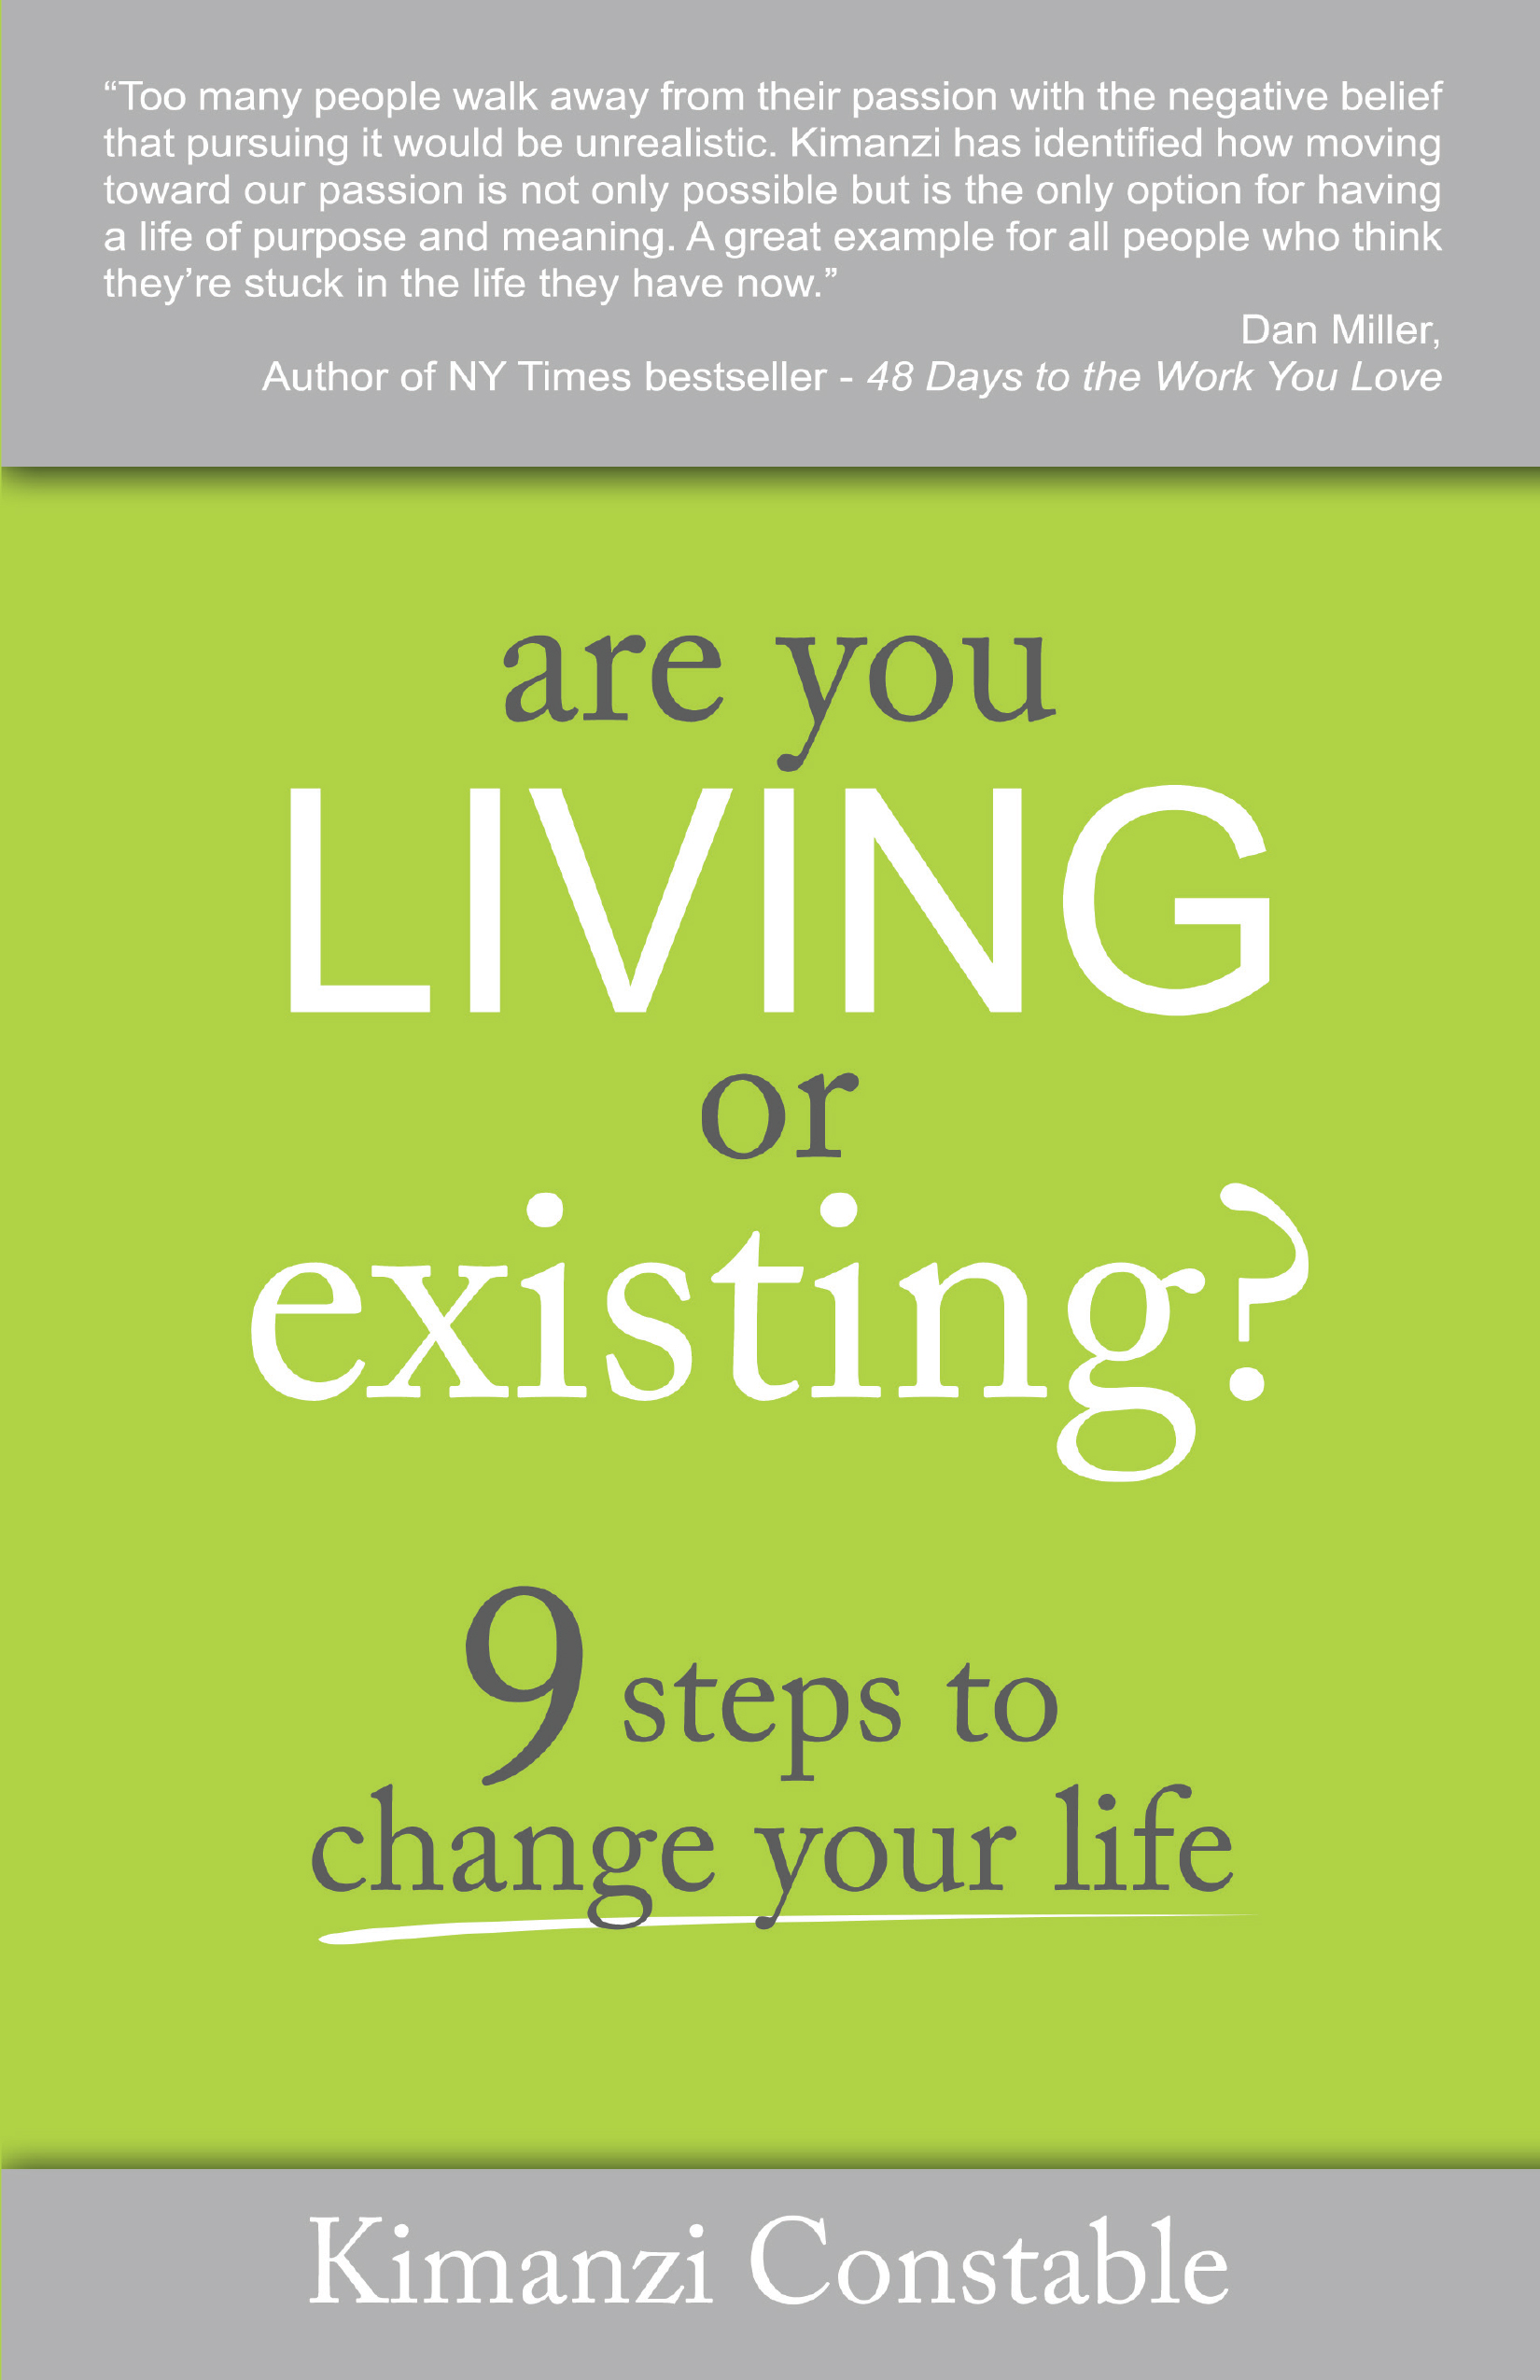 Are You Living or Existing? - By kimanzi constable